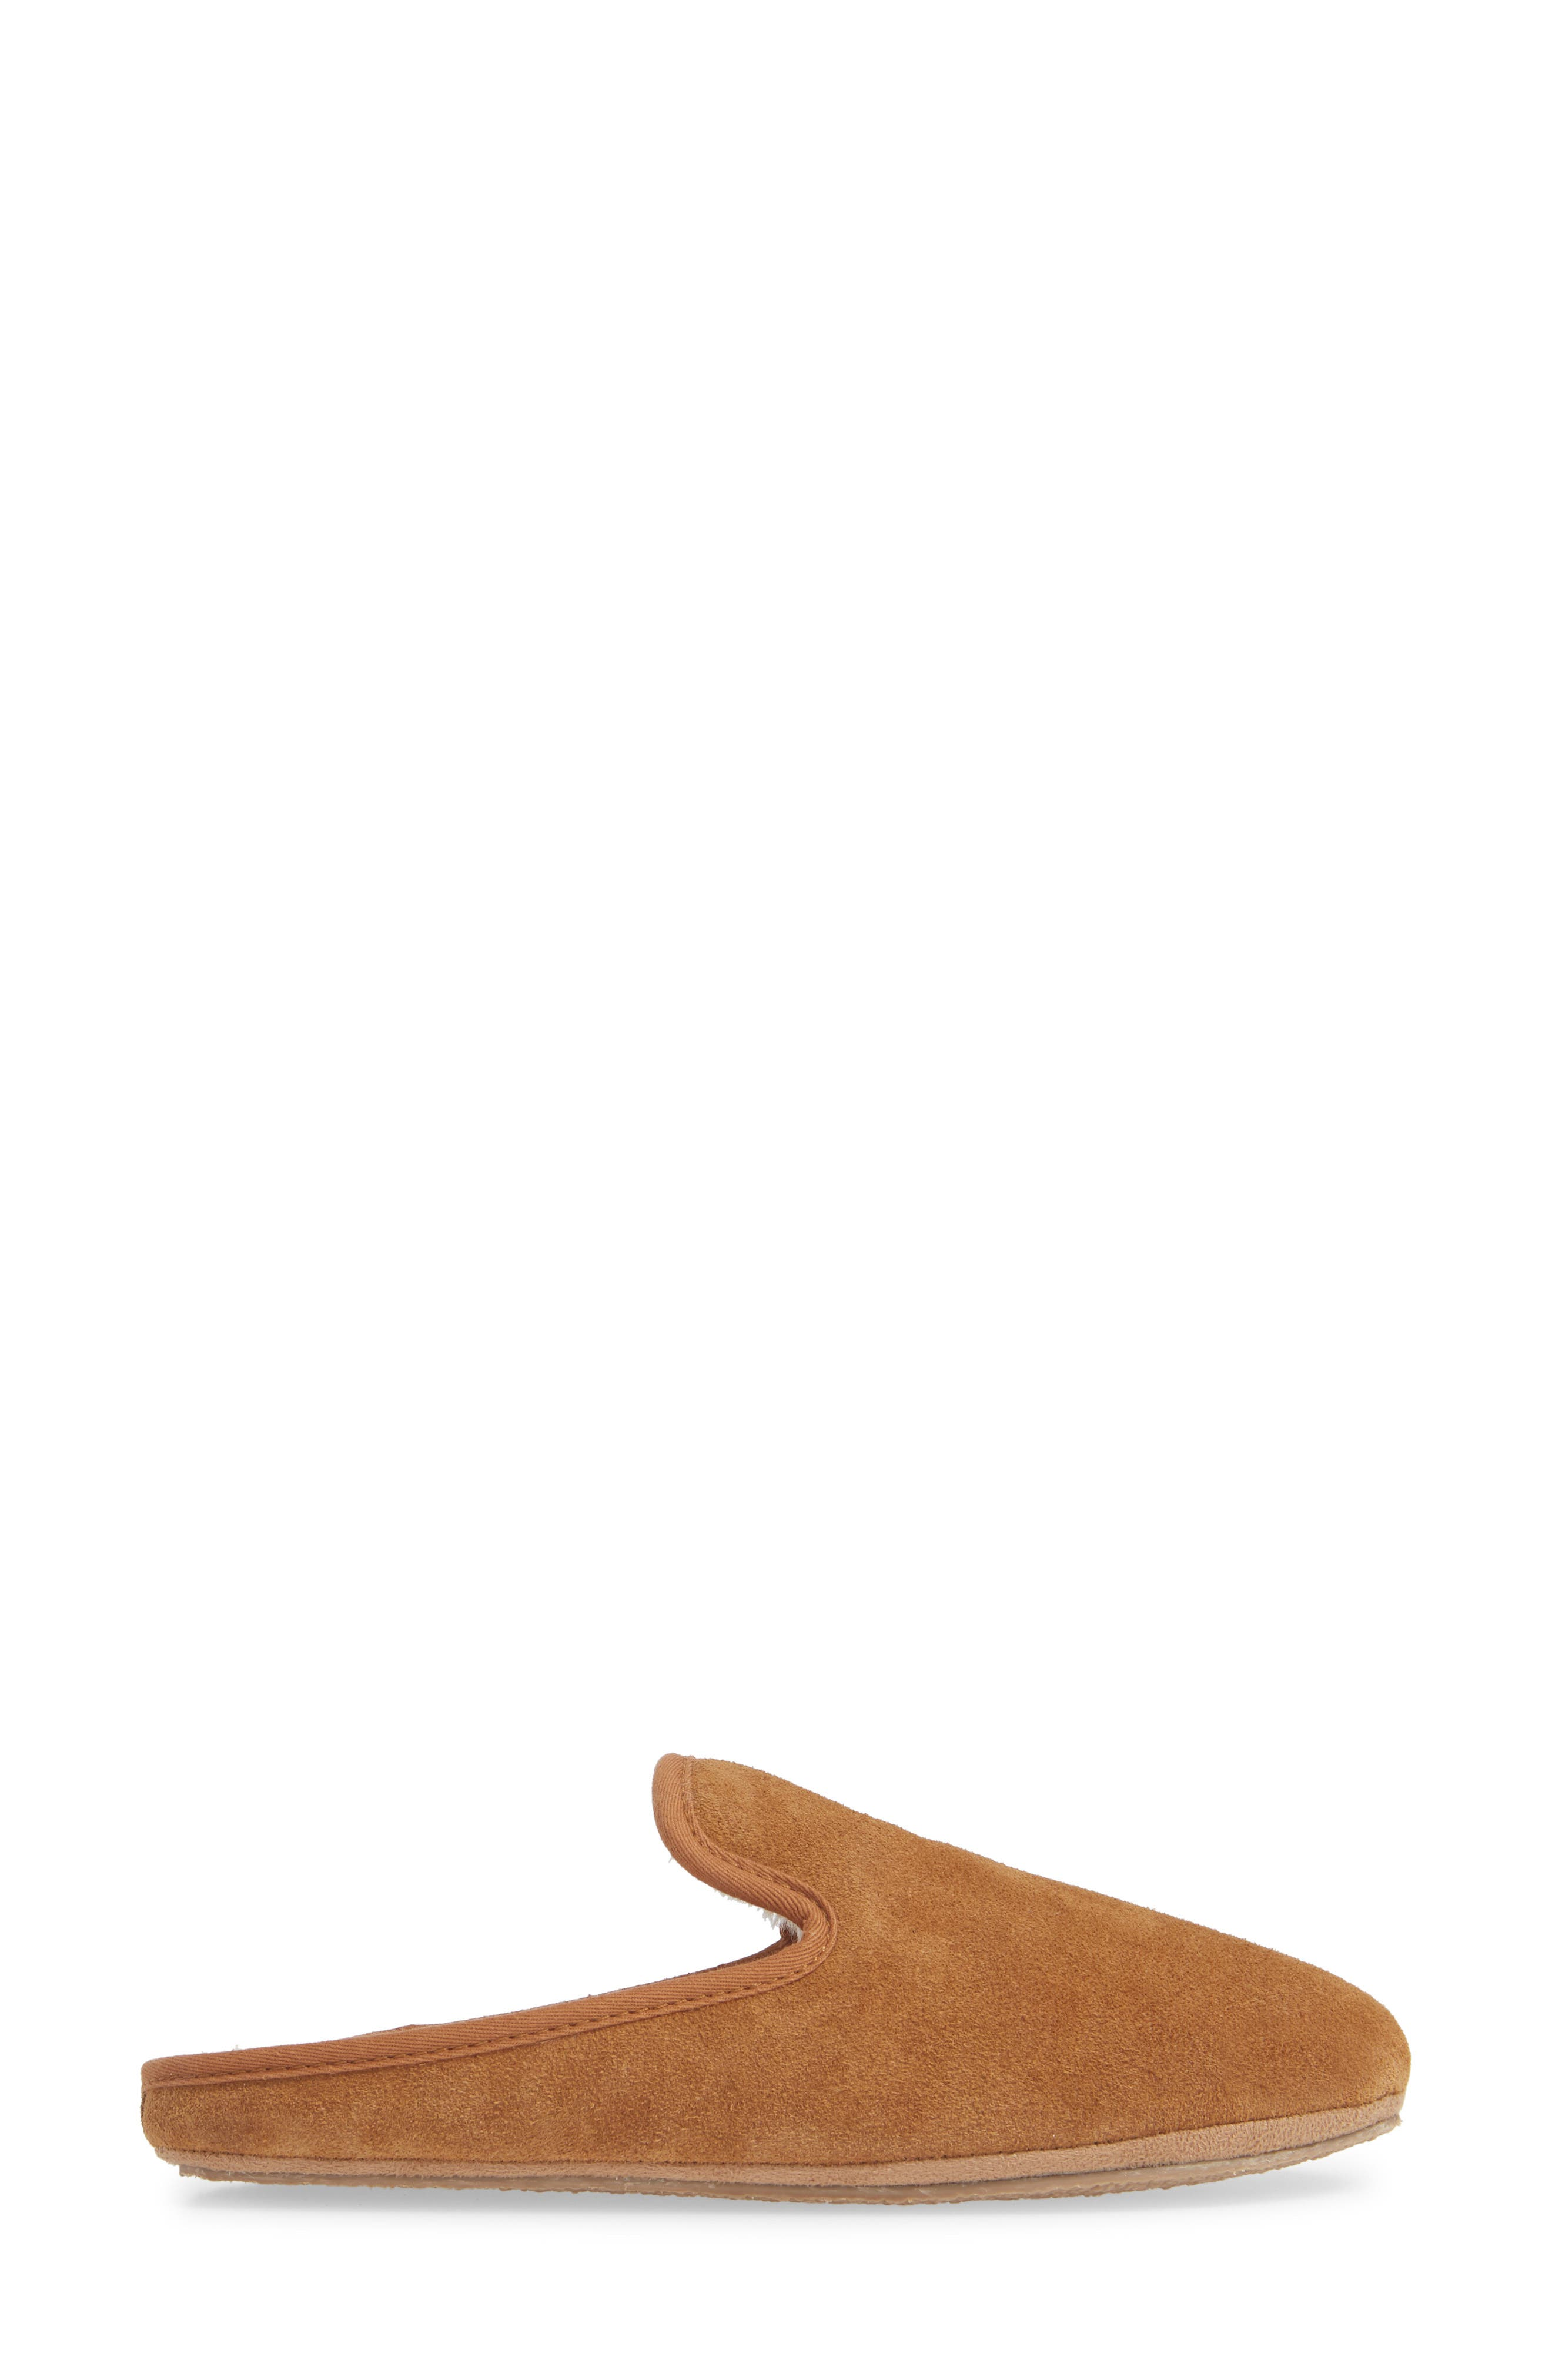 The Loafer Scuff Slipper,                             Alternate thumbnail 3, color,                             TIMBER BEAM